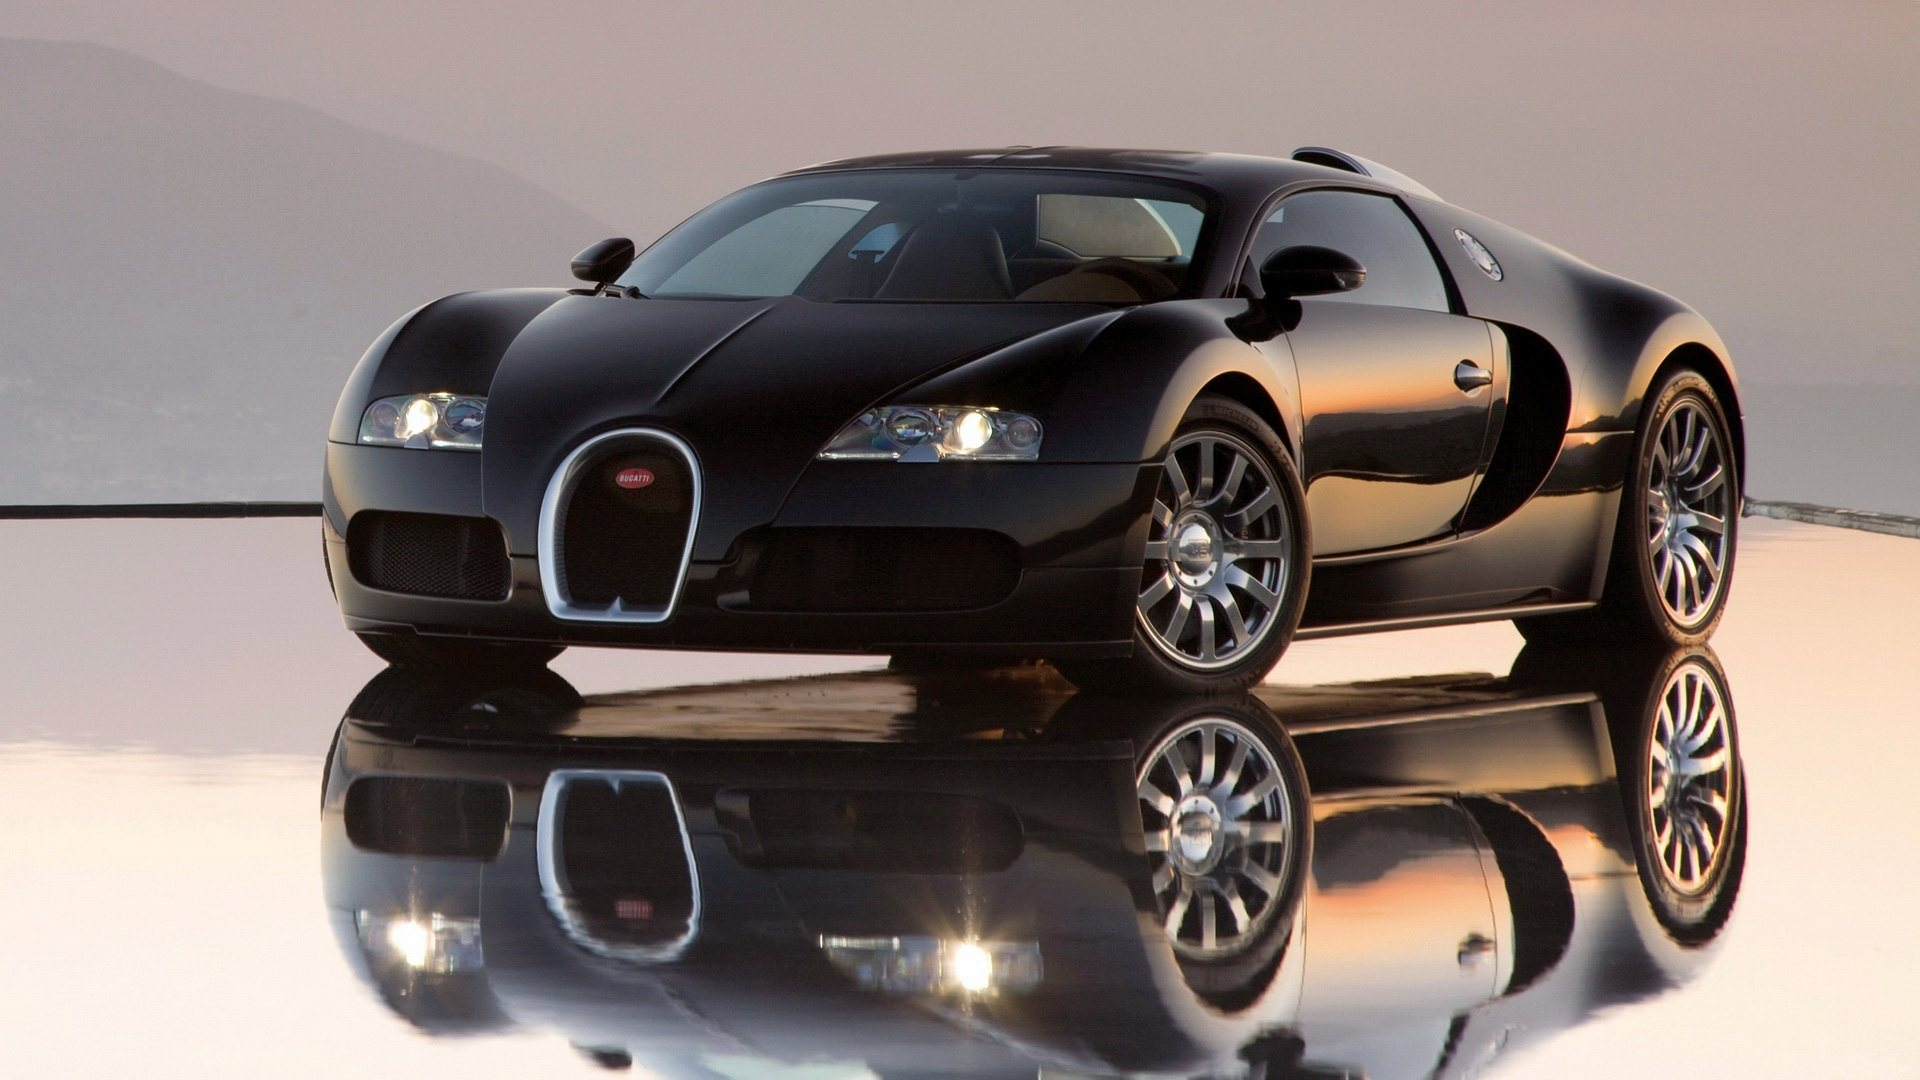 77 ] Wallpaper Bugatti Veyron On WallpaperSafari